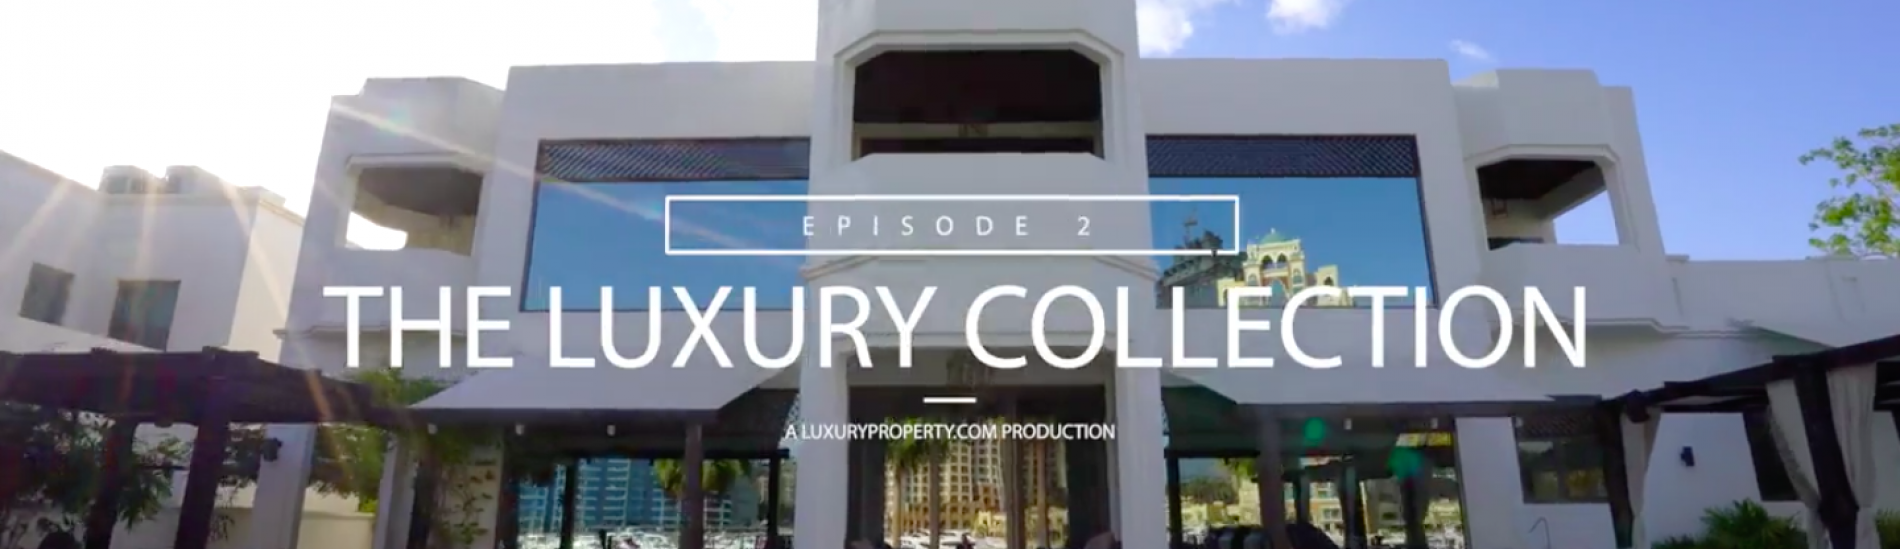 The Luxury Collection: Episode 2